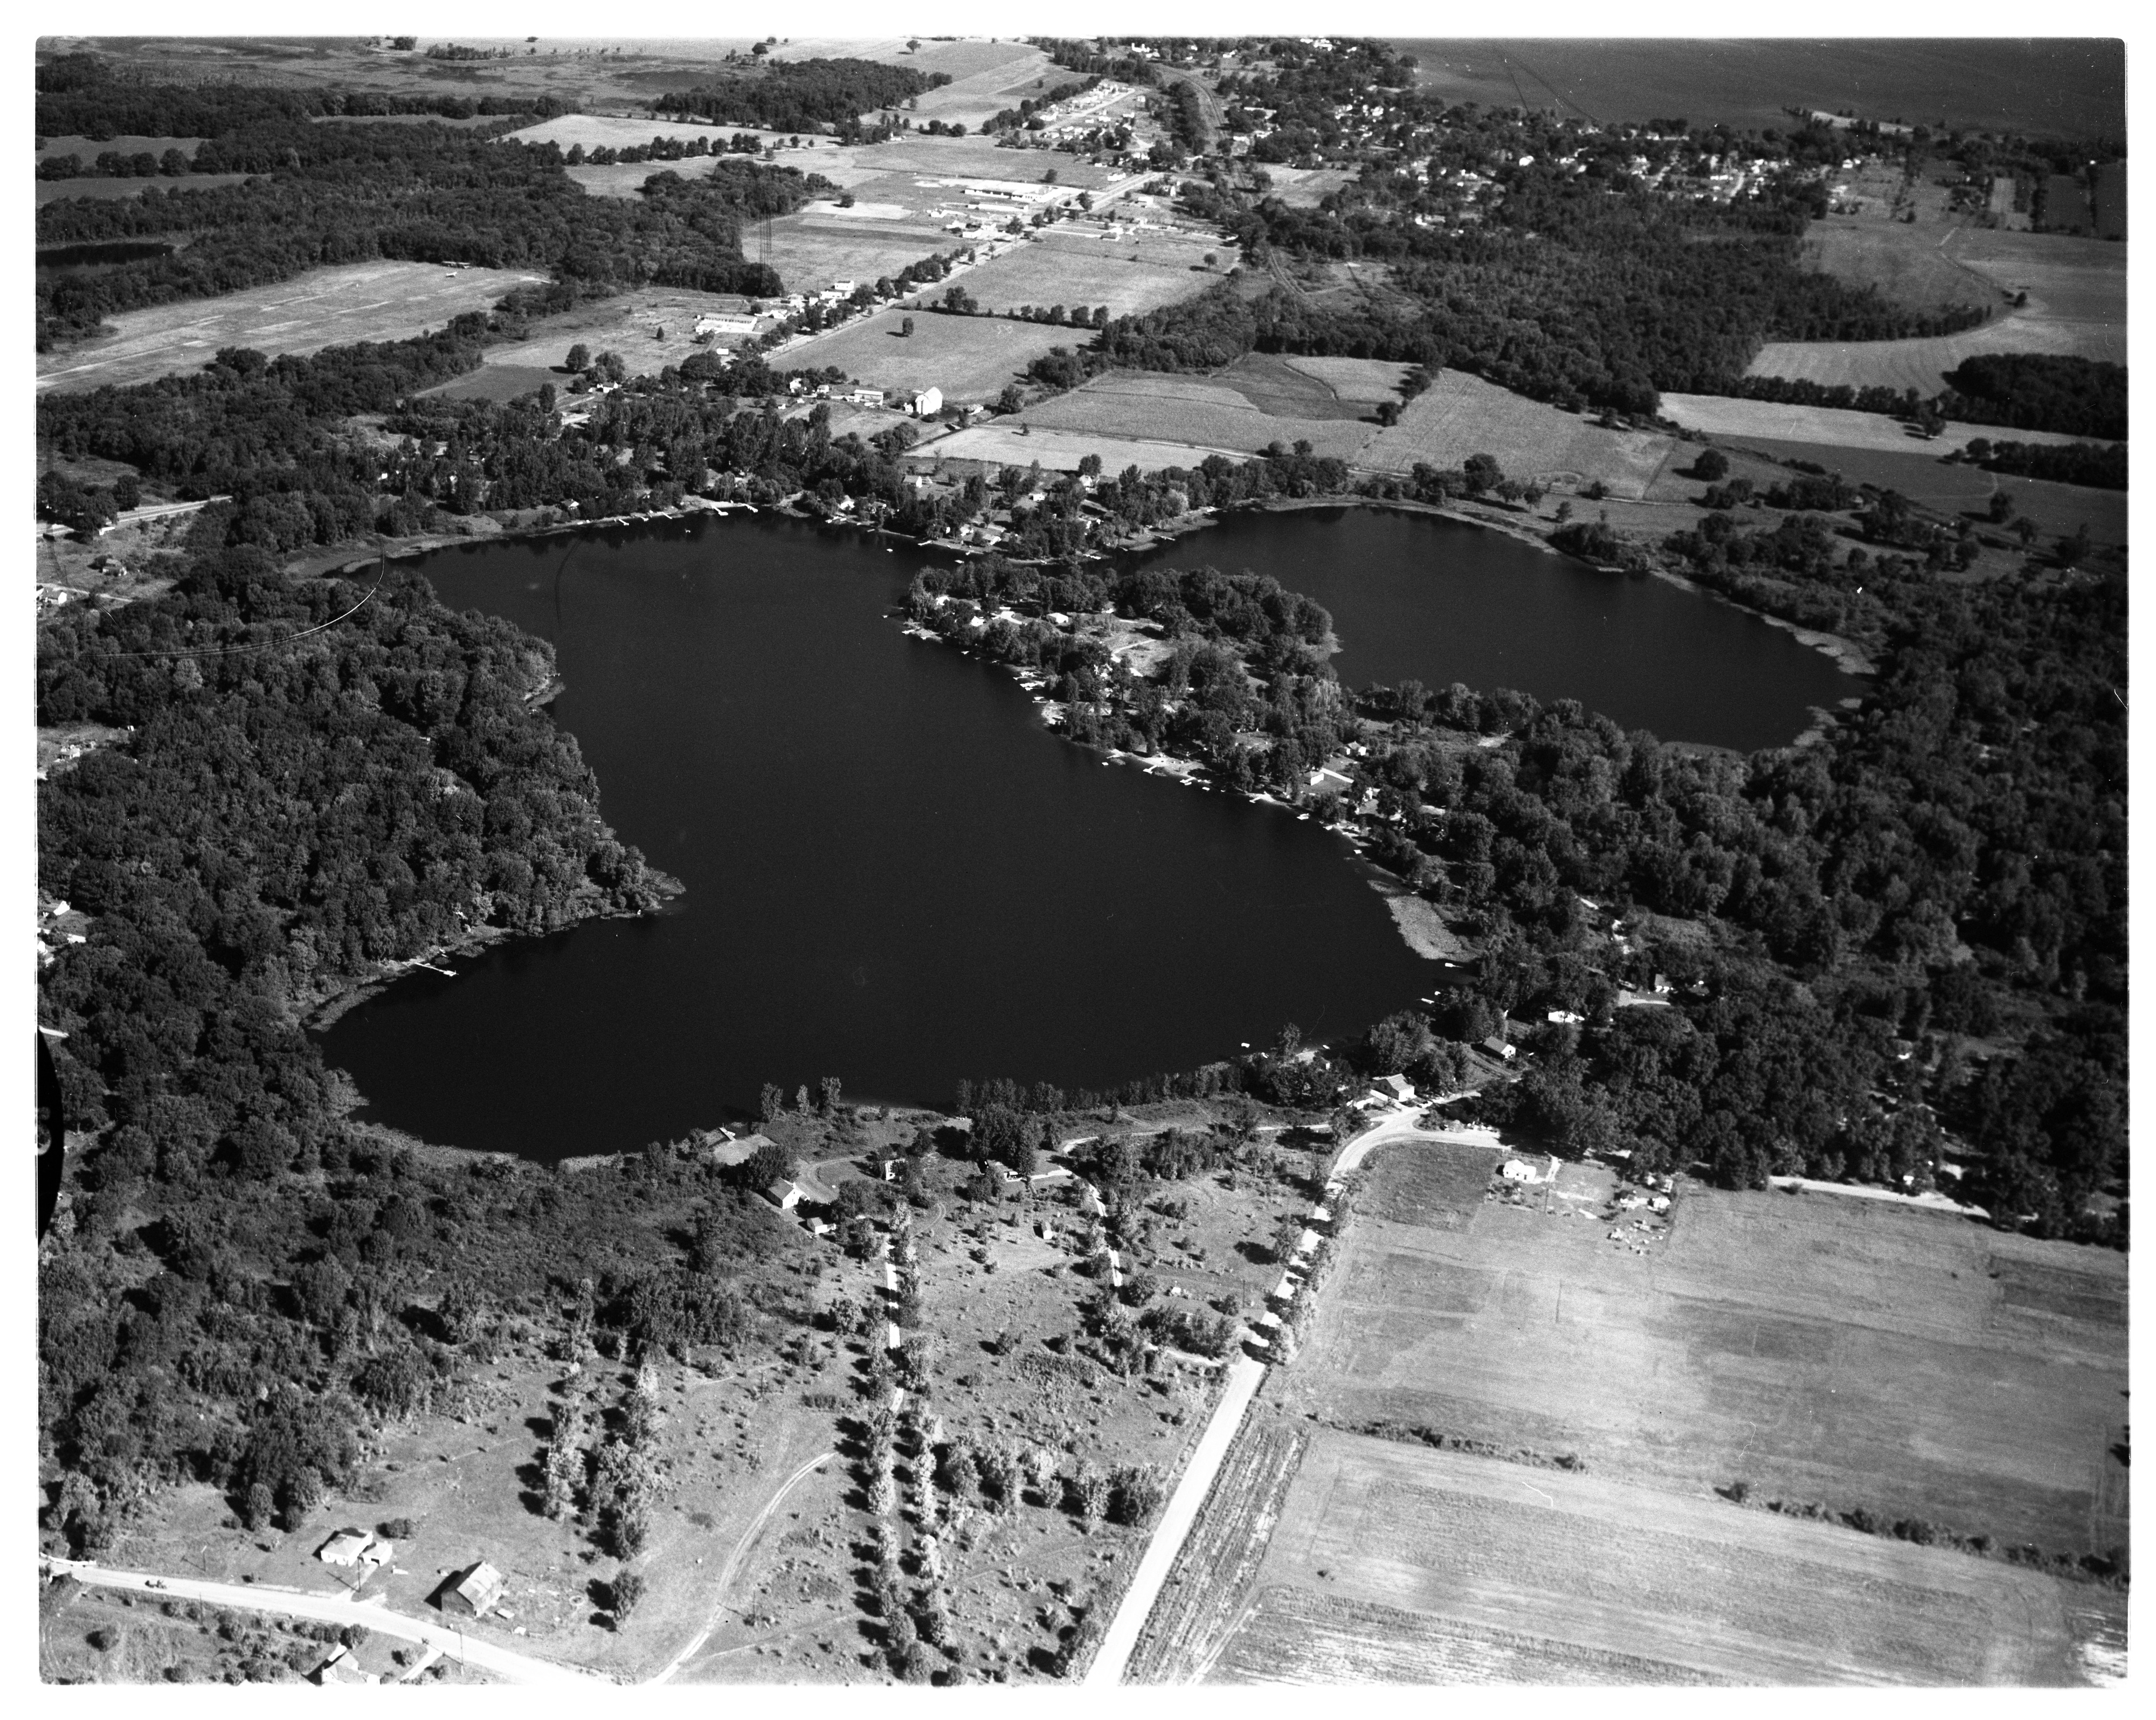 Aerial Photograph of Horseshoe Lake, Northfield Township, August 1956 image